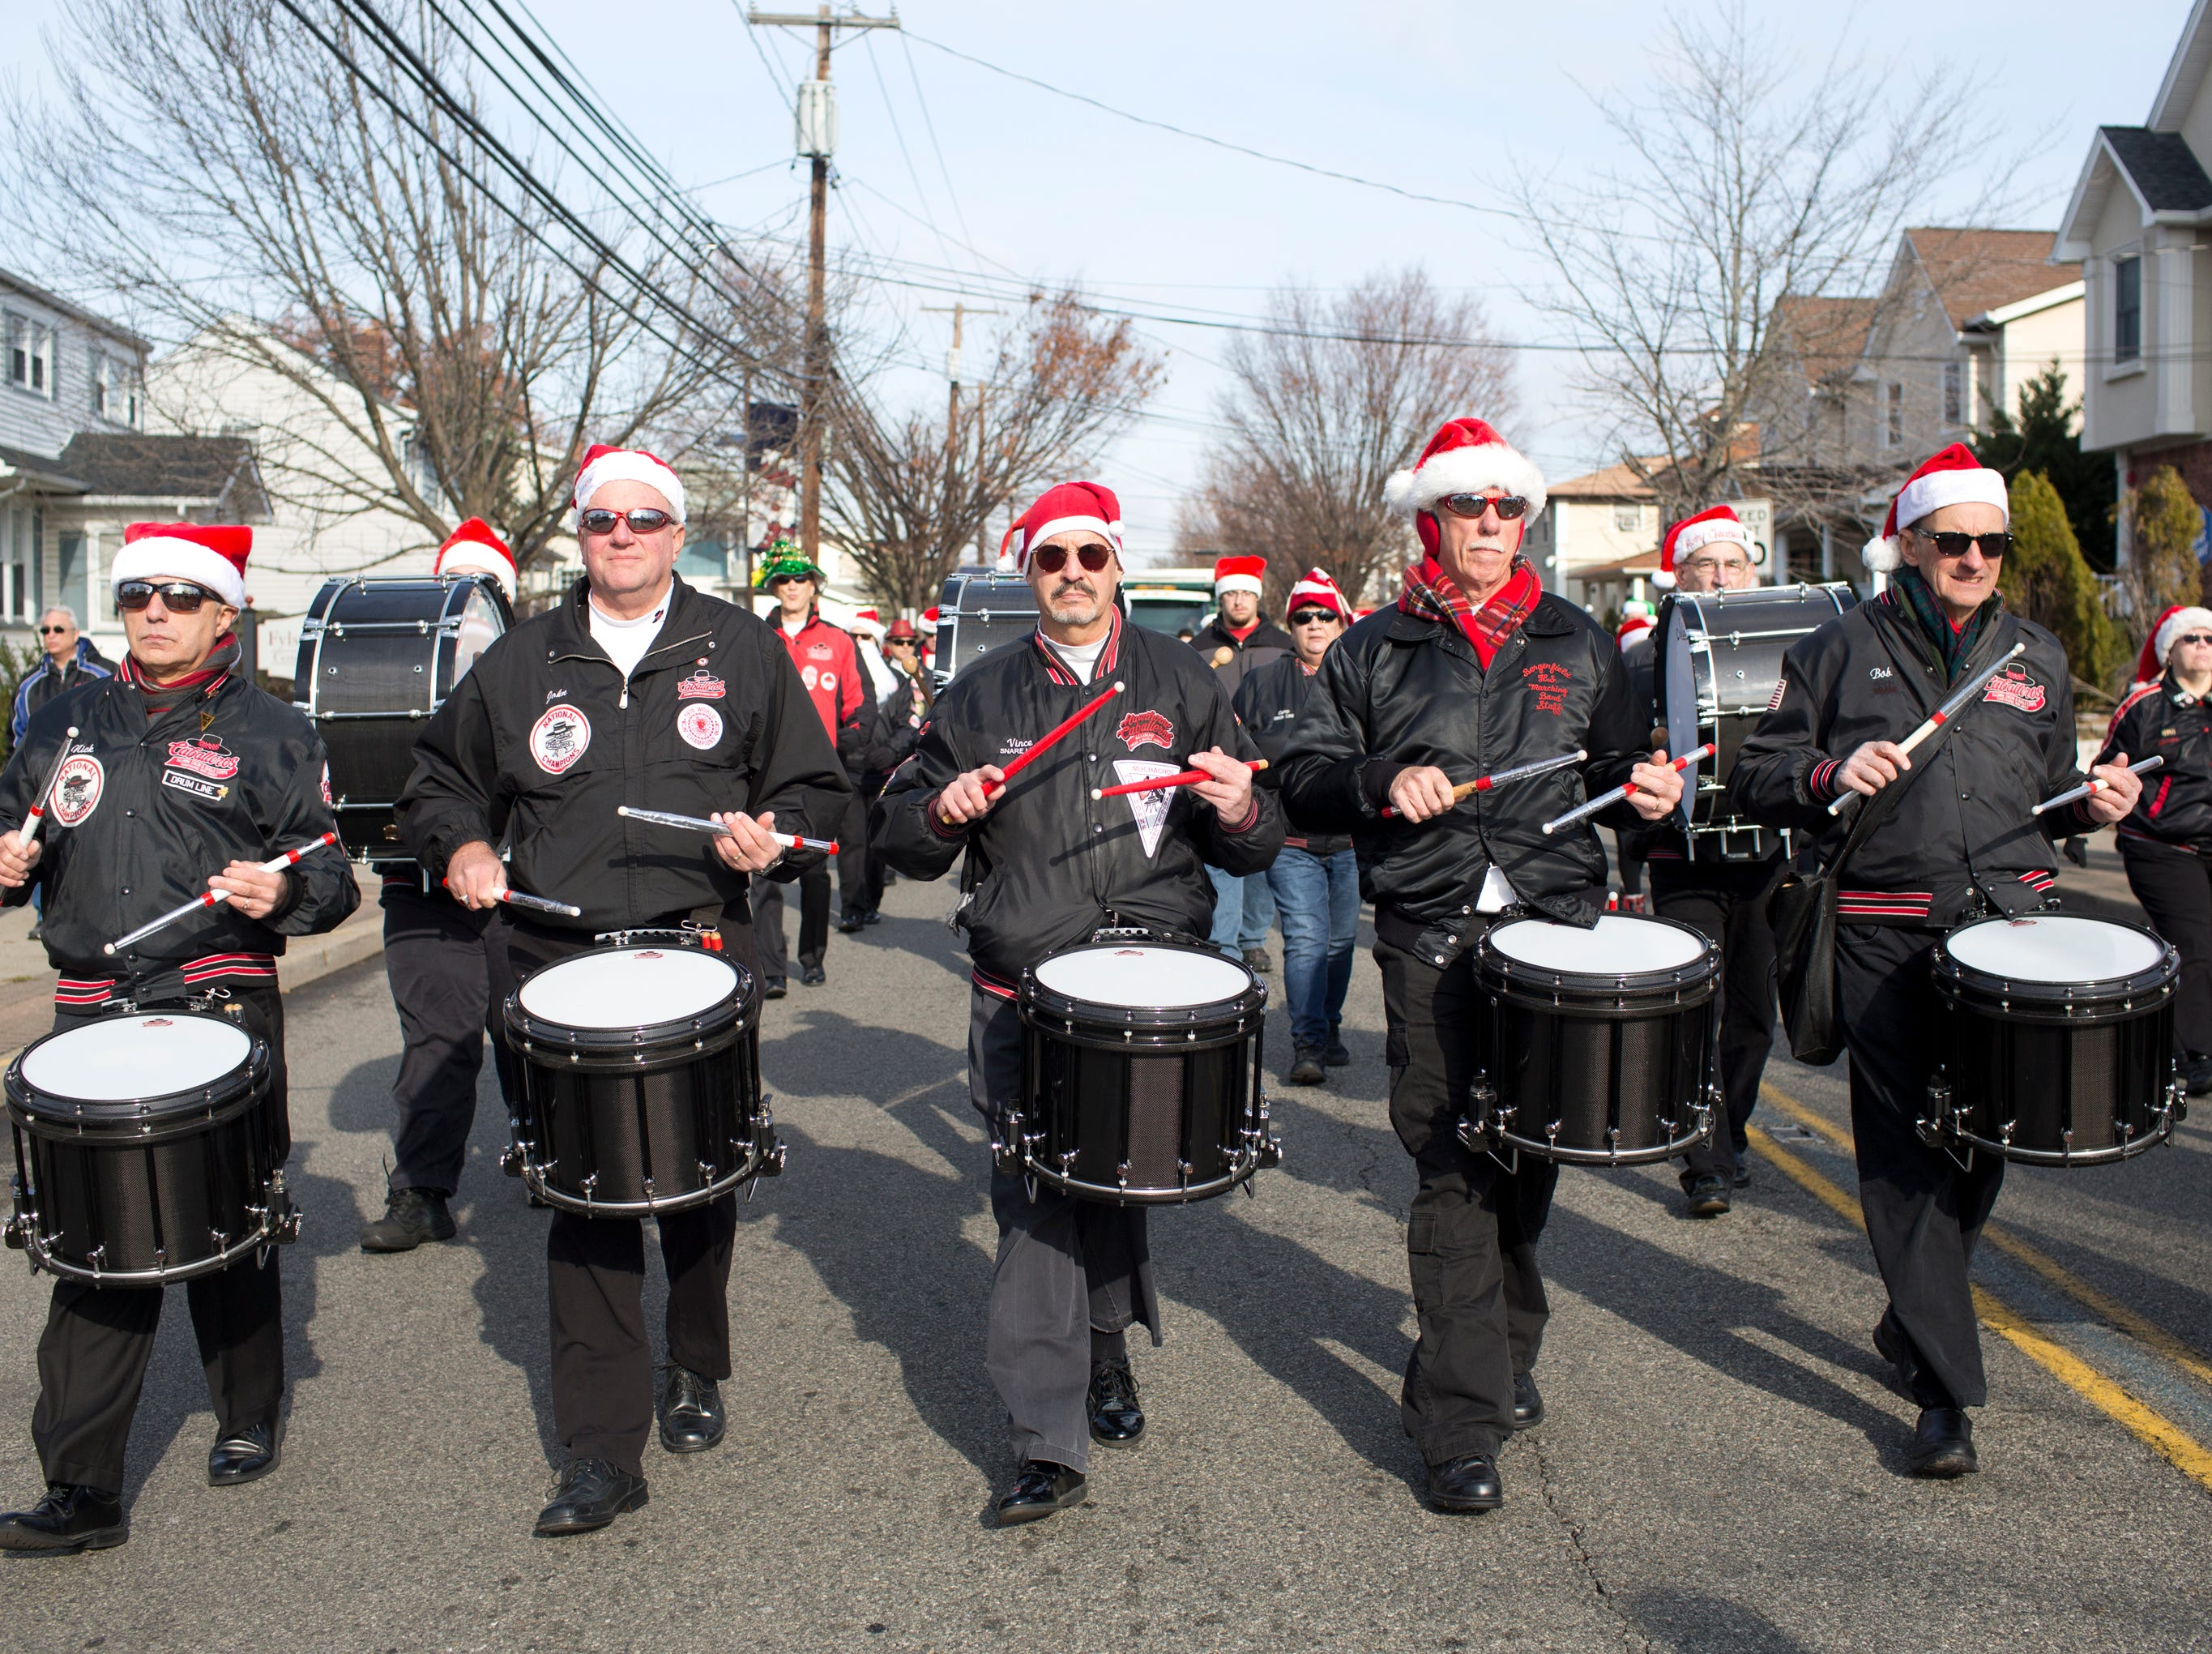 The Hawthorne Caballeros Alumni Drum and Bugle Corps make their way down Lafayette Avenue during the 33rd Annual Santa Parade in Hawthorne on Saturday, Dec. 1, 2018.